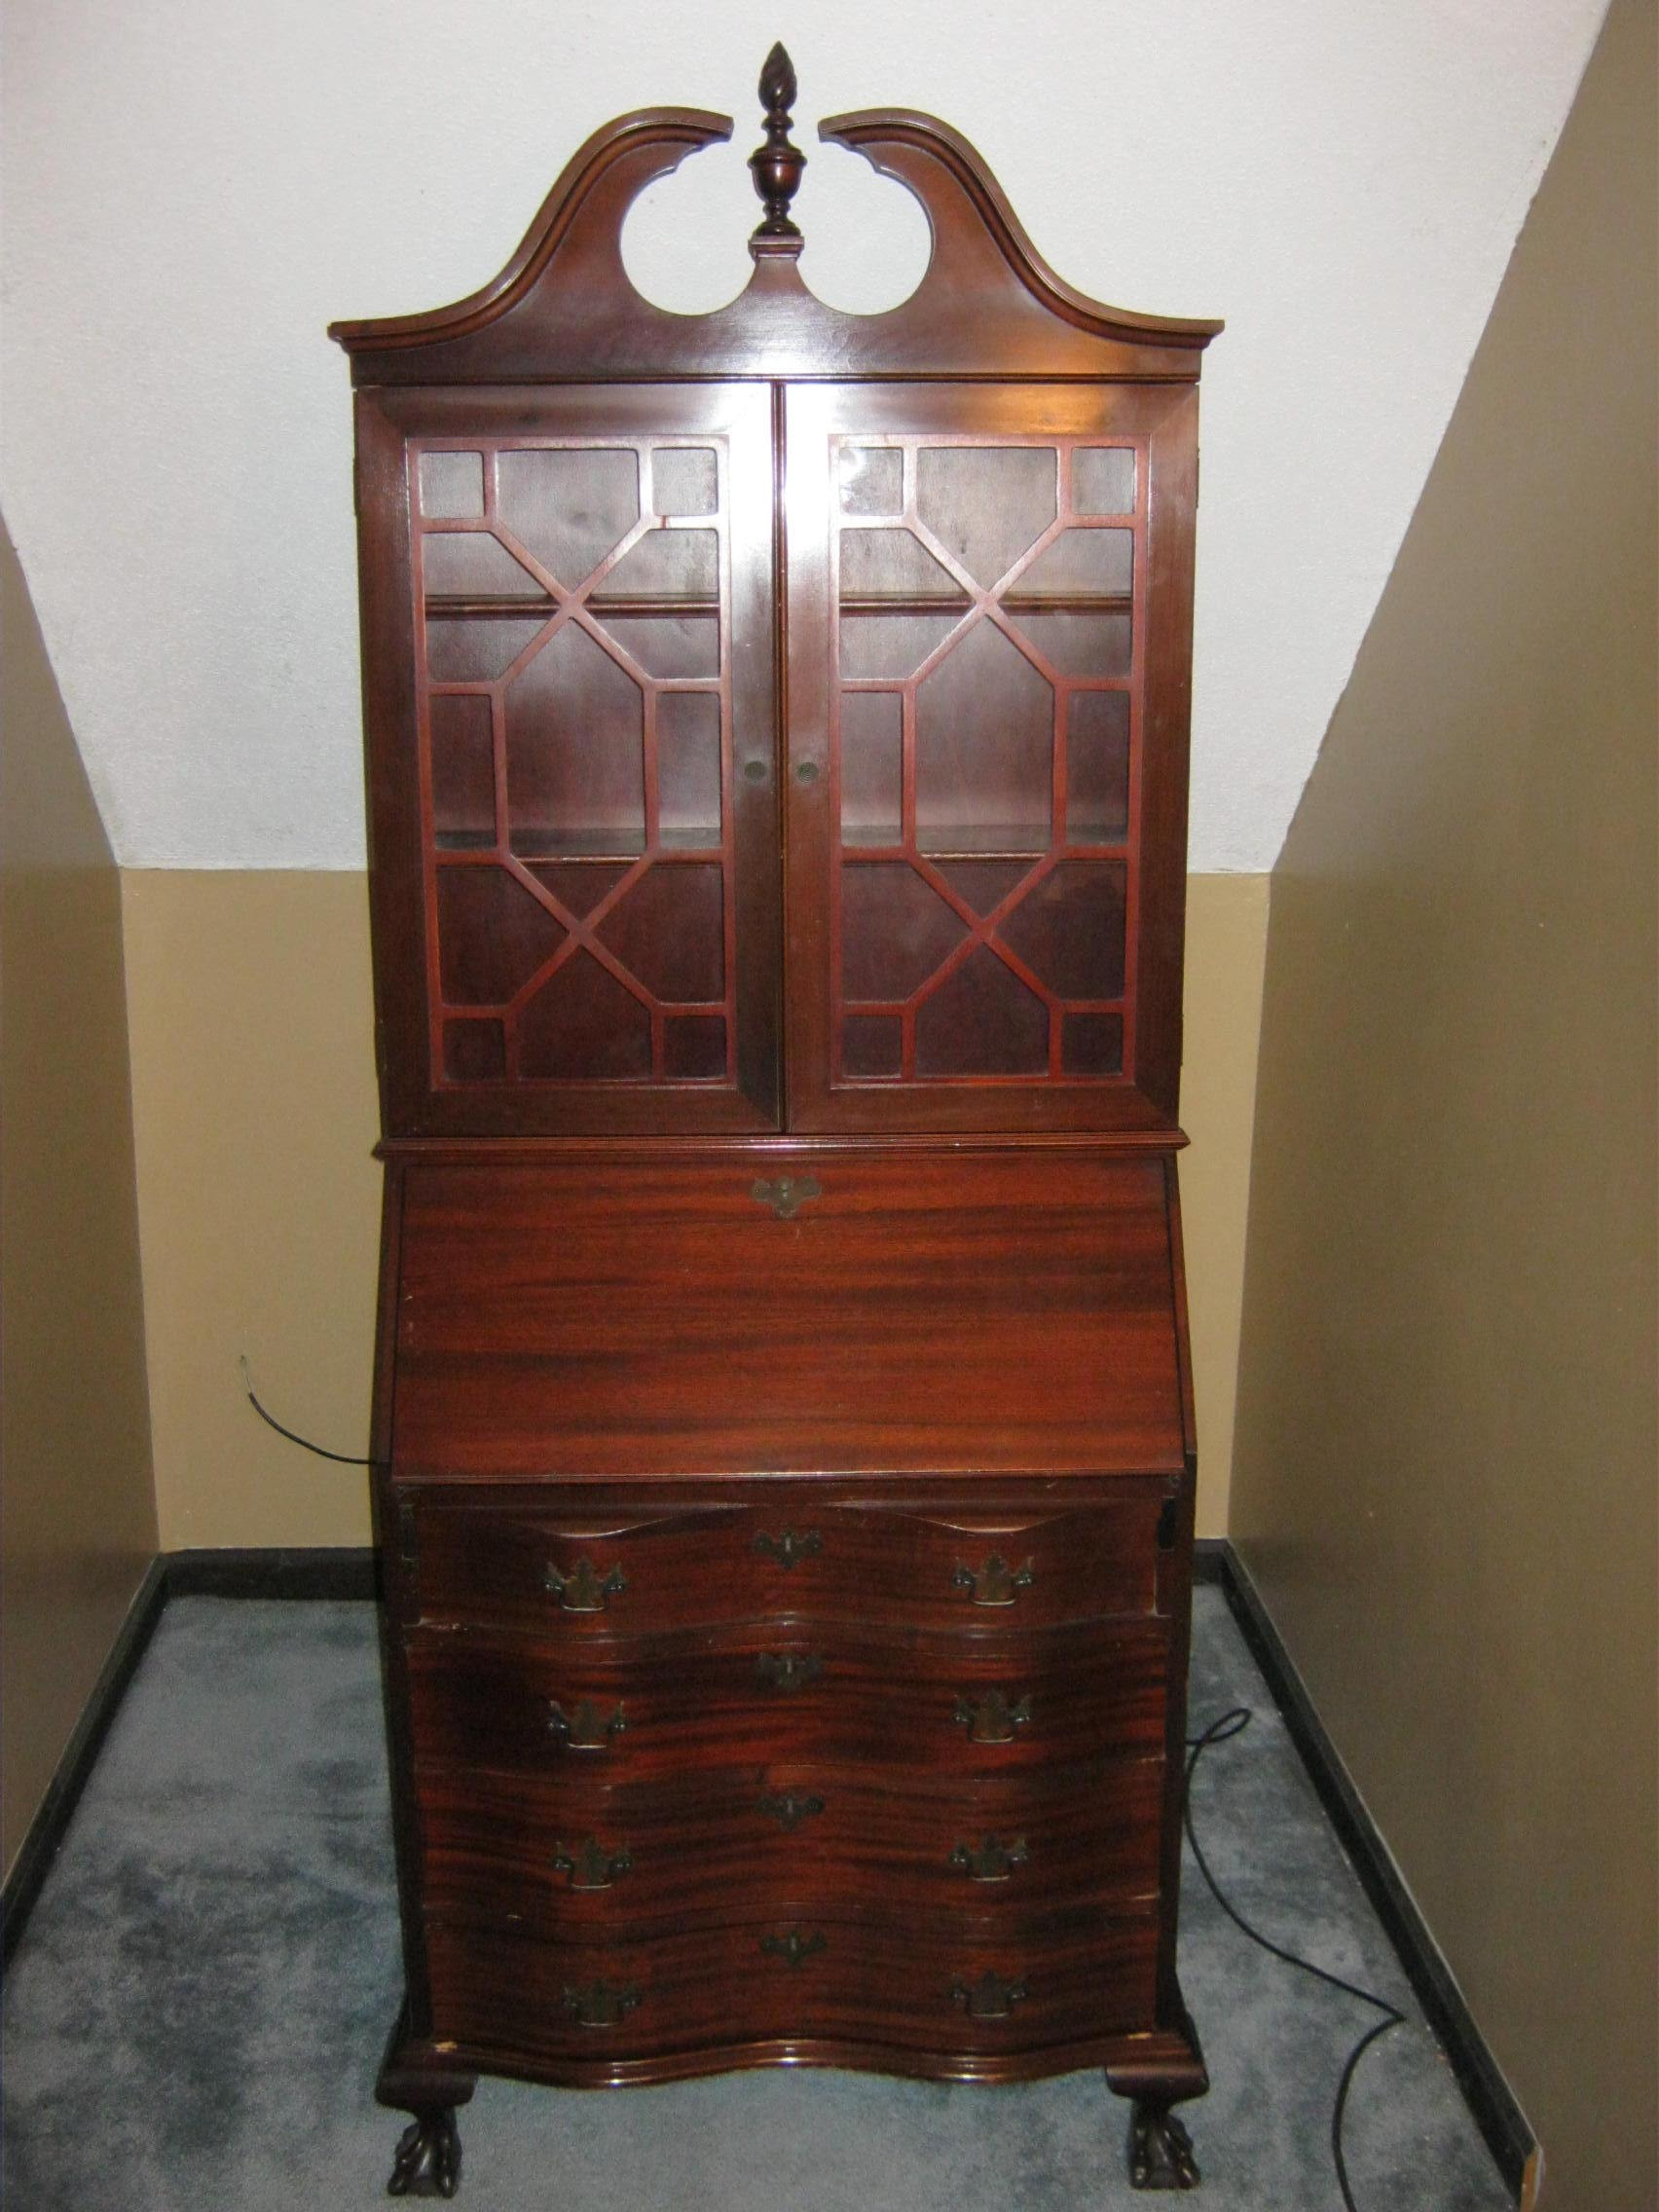 Antique Secretary Cabinet with Drop Down Desk For Sale | Antiques.com | Classifieds